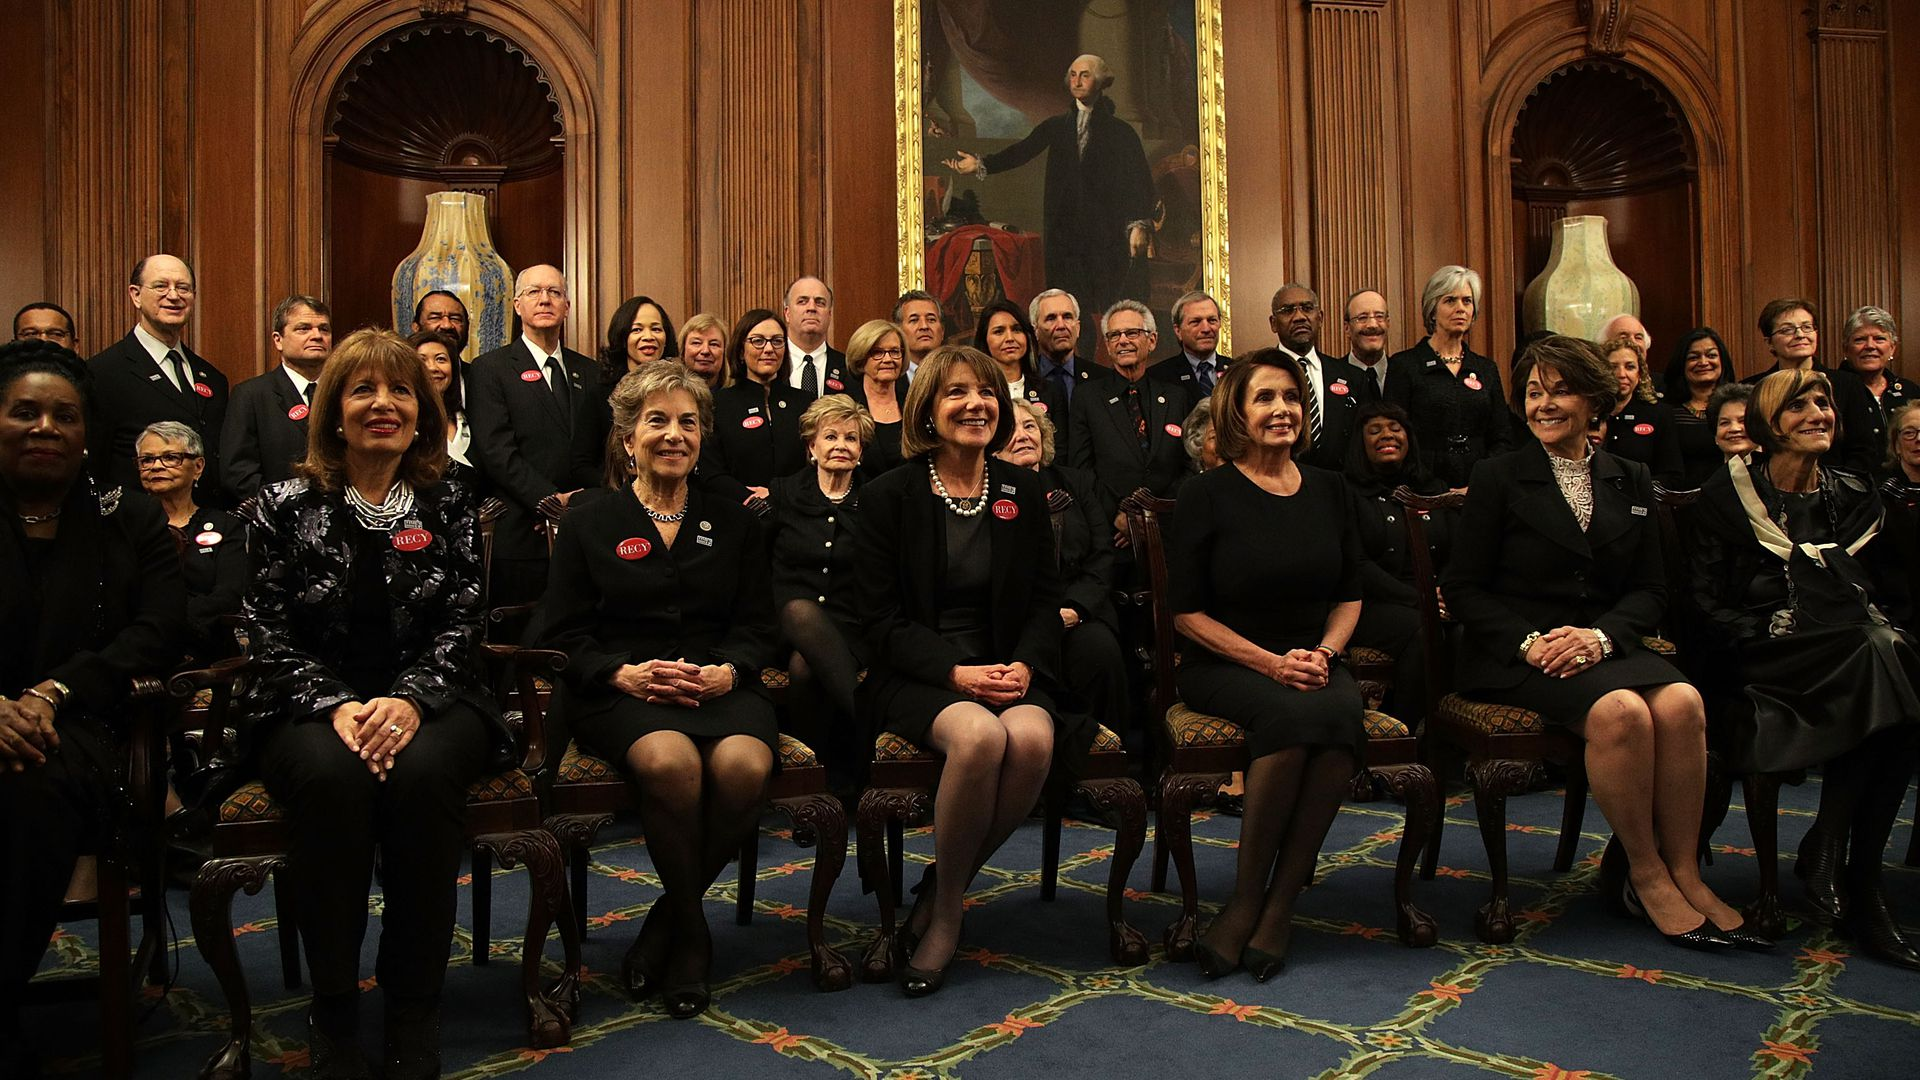 House Minority Leader Rep. Nancy Pelosi and other House Democrats wear black prior to President Donald Trump's first State of the Union address.